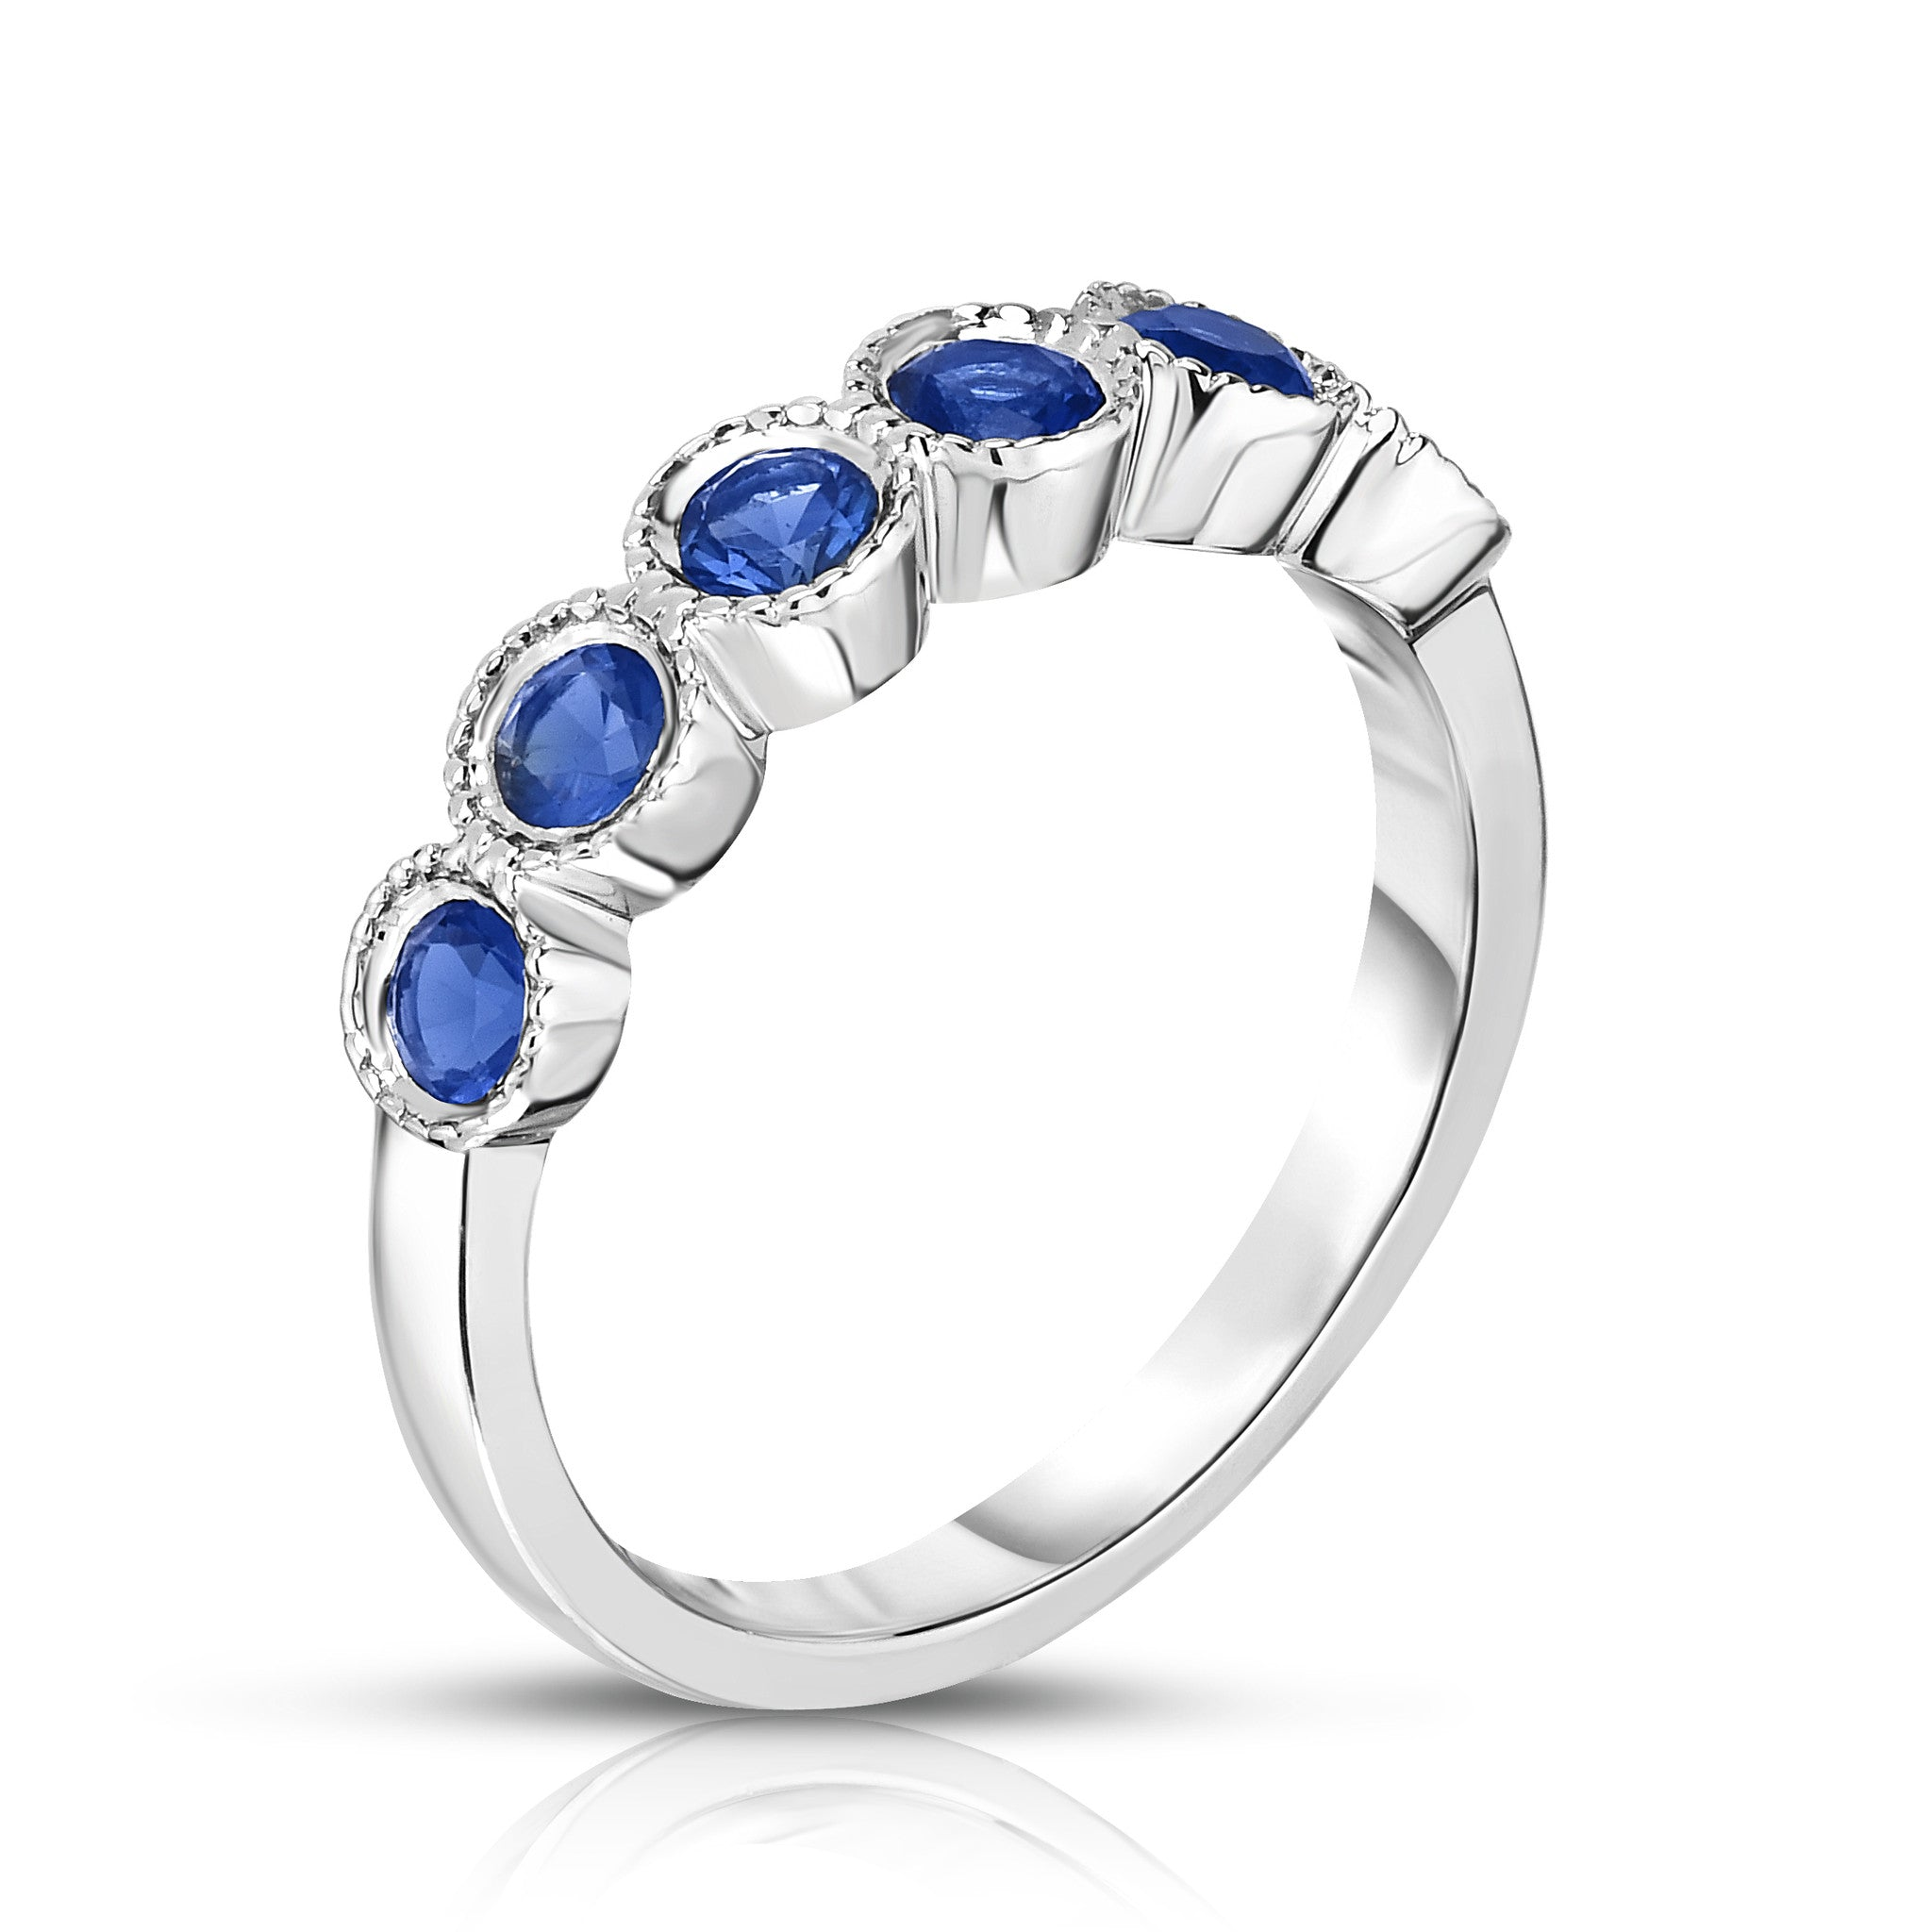 blue diamond at j id engagement double for sale jewelry sapphire ring wedding rings halo royal org